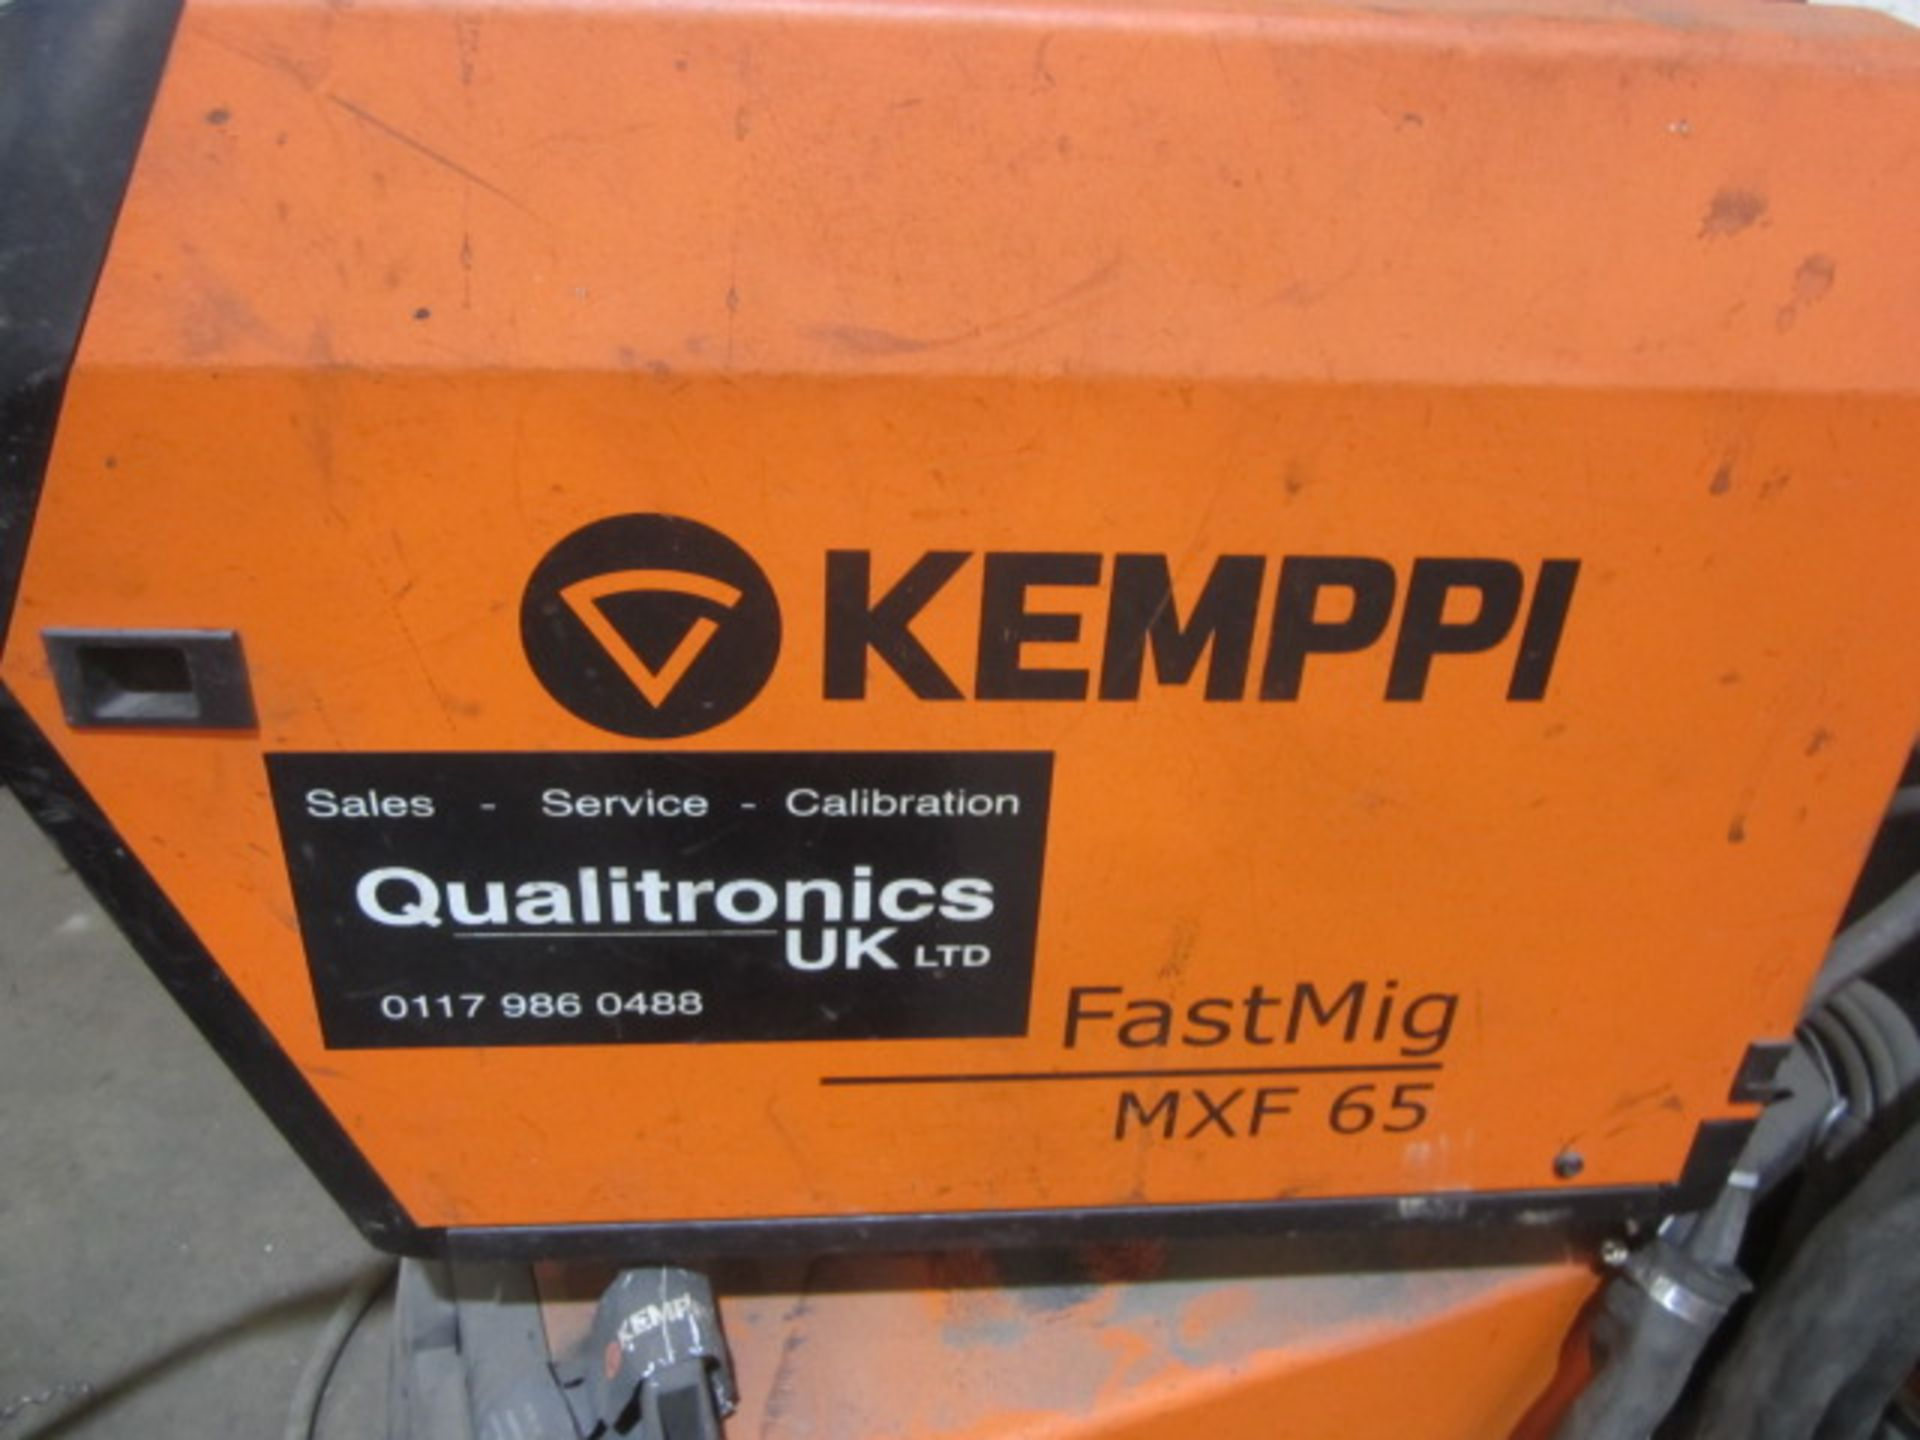 Kemppi Fast Mig M420 mig welder, serial no. 2694678, with Fast Mig MXF65 wire feeder, serial no. - Image 4 of 7